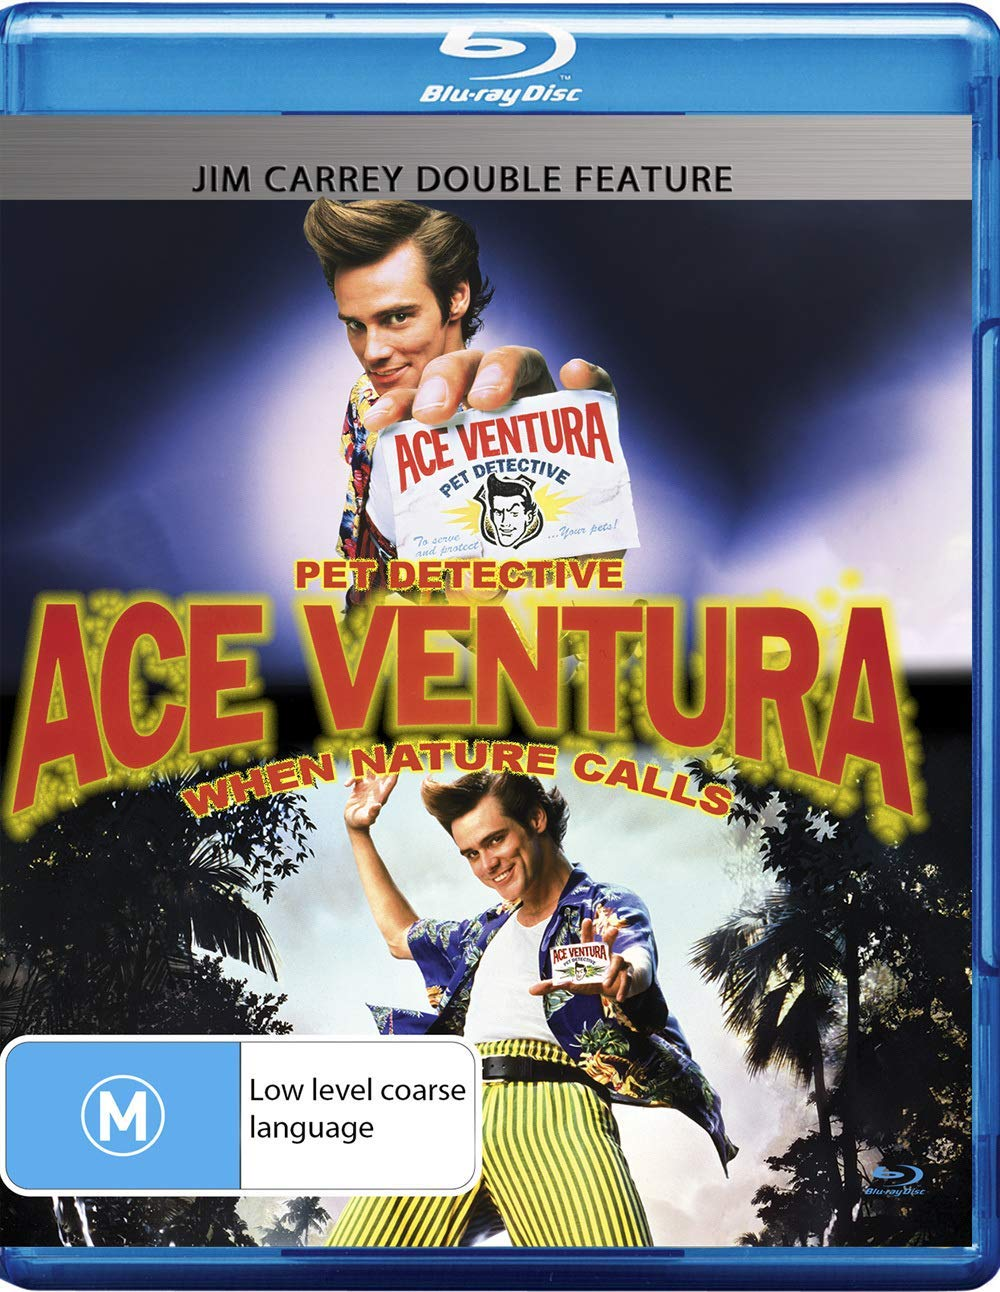 Ace Ventura: Pet Detective / Ace Ventura: When Nature Calls (25th Anniversary Edition)